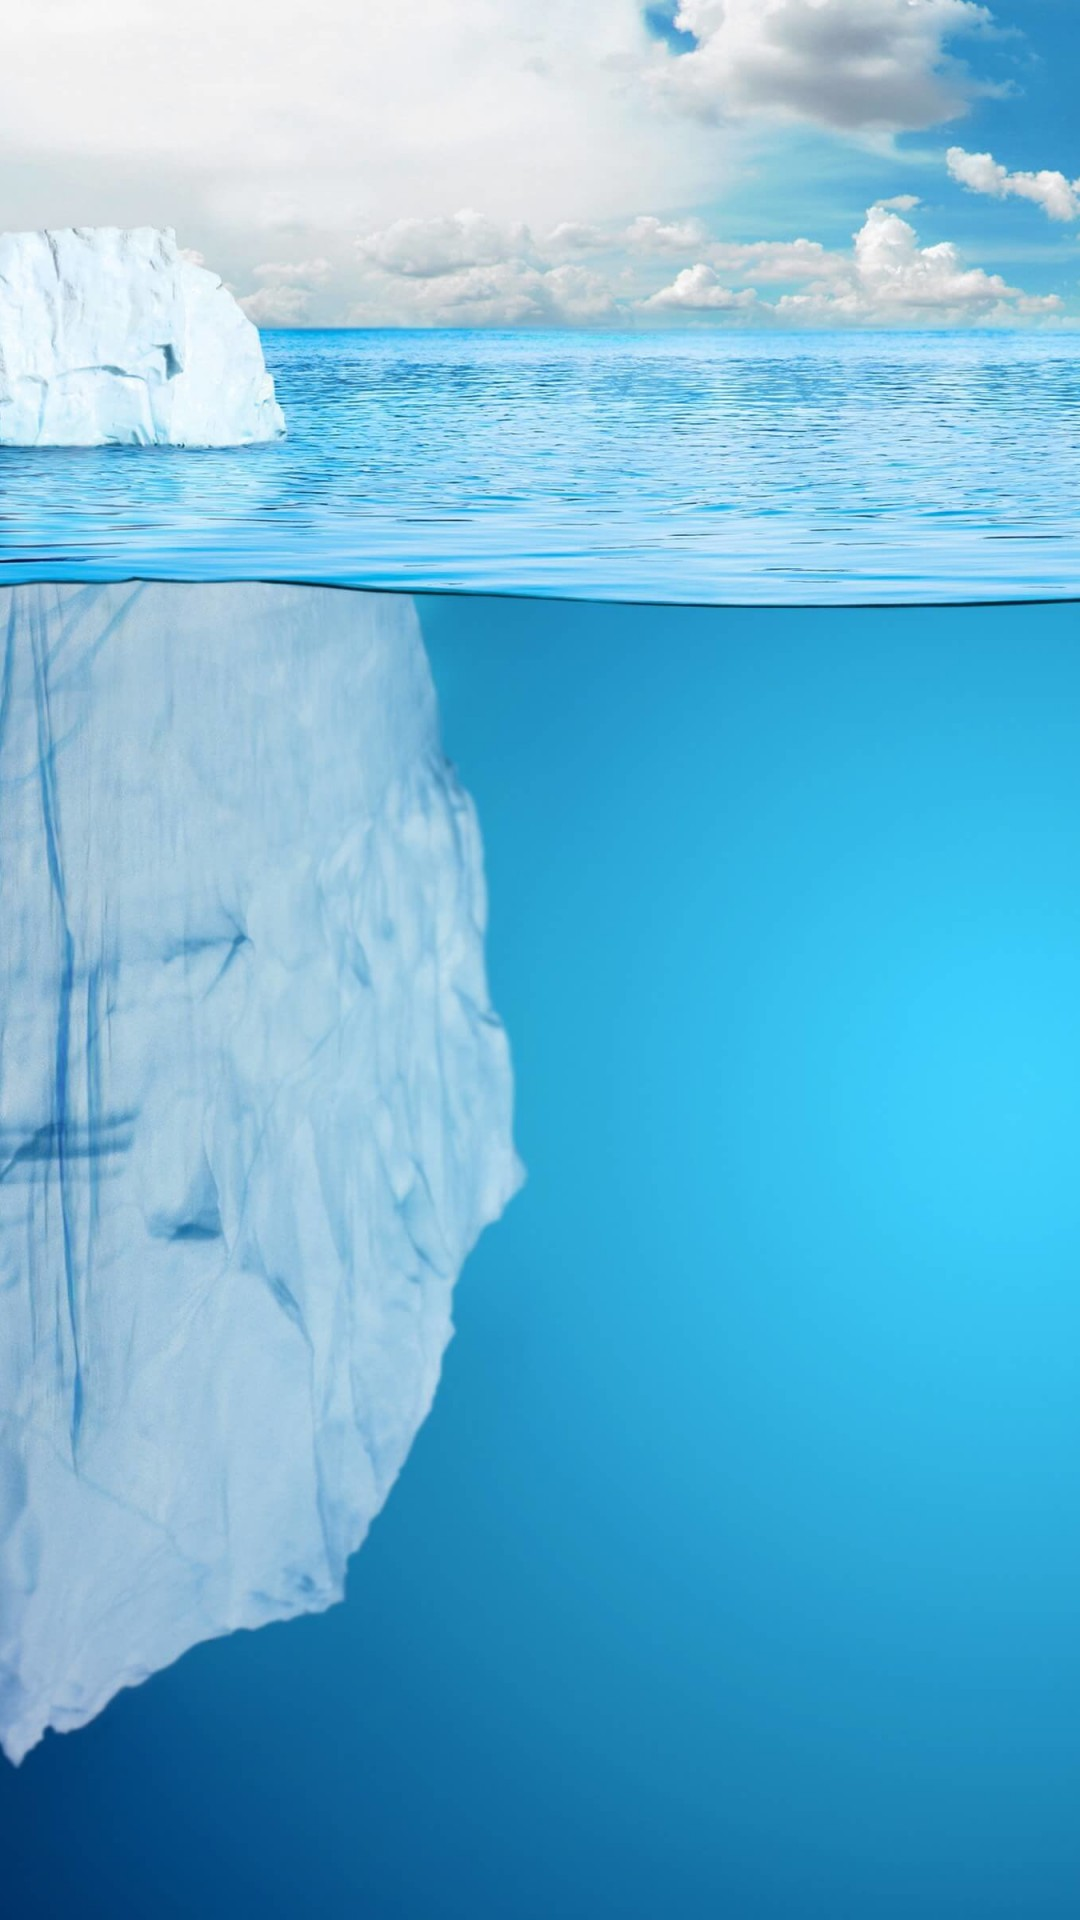 The invisible part of the iceberg Wallpaper for SAMSUNG Galaxy Note 3